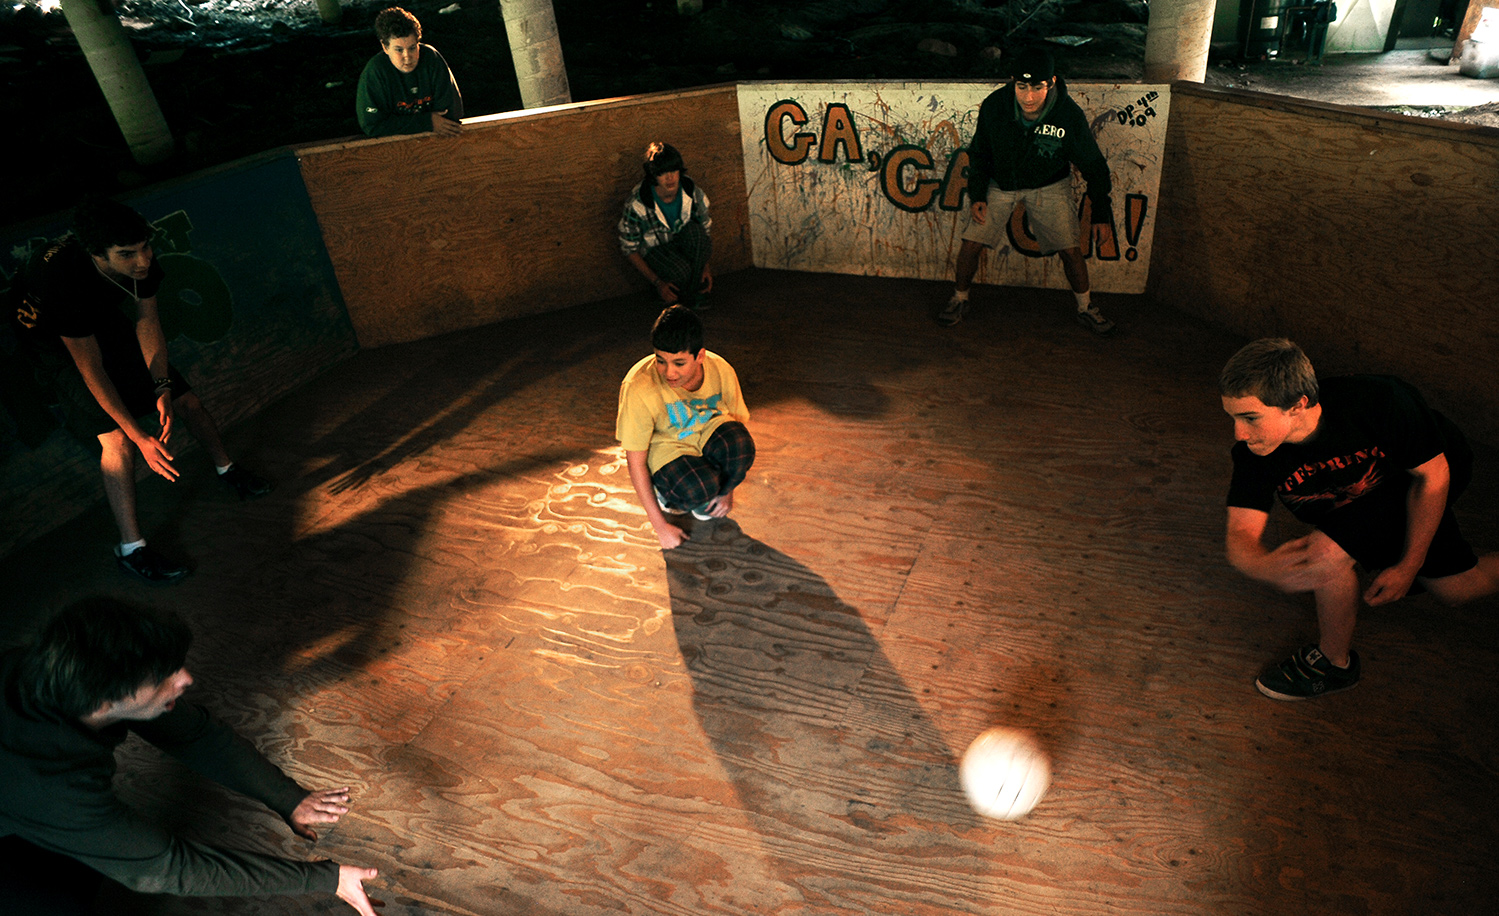 Jewish campgoers playing ga-ga ball at Camp Shwayder in Colorado in 2010. RJ Sangosti/The Denver Post via Getty Images.